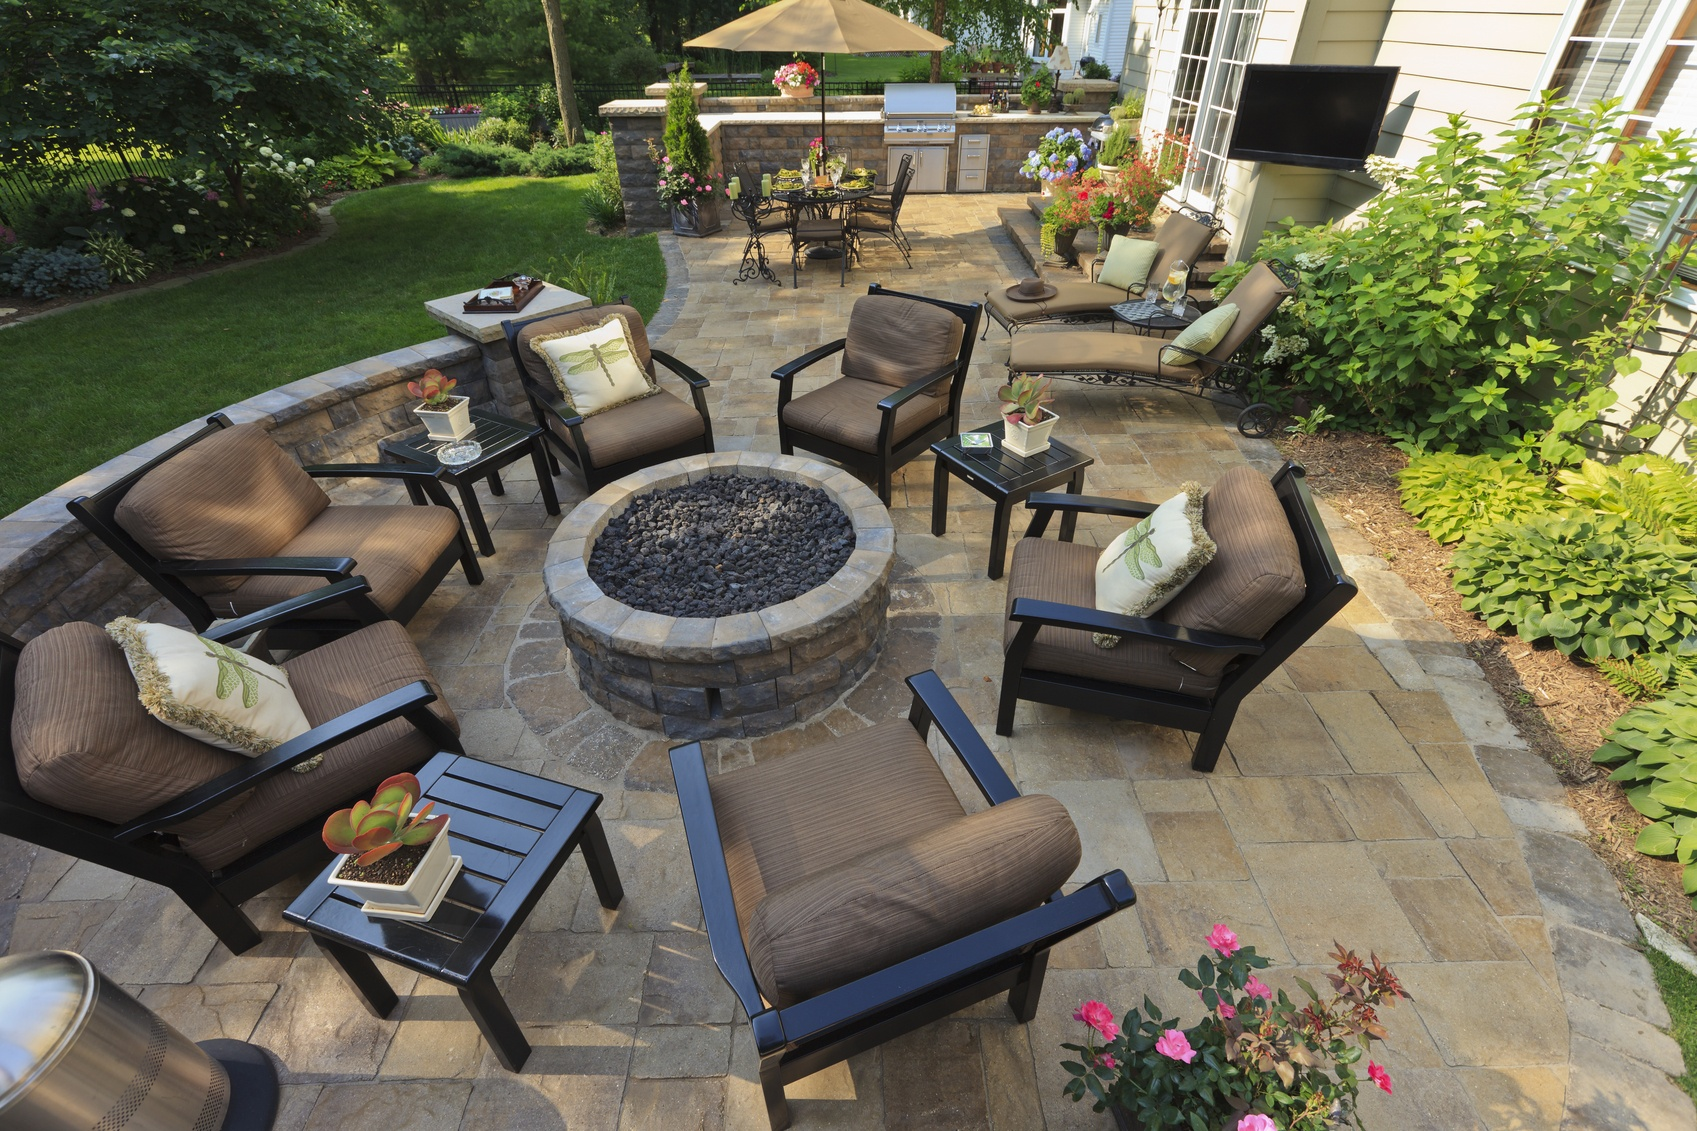 Top garden center for plantings in Sussex County, NJ